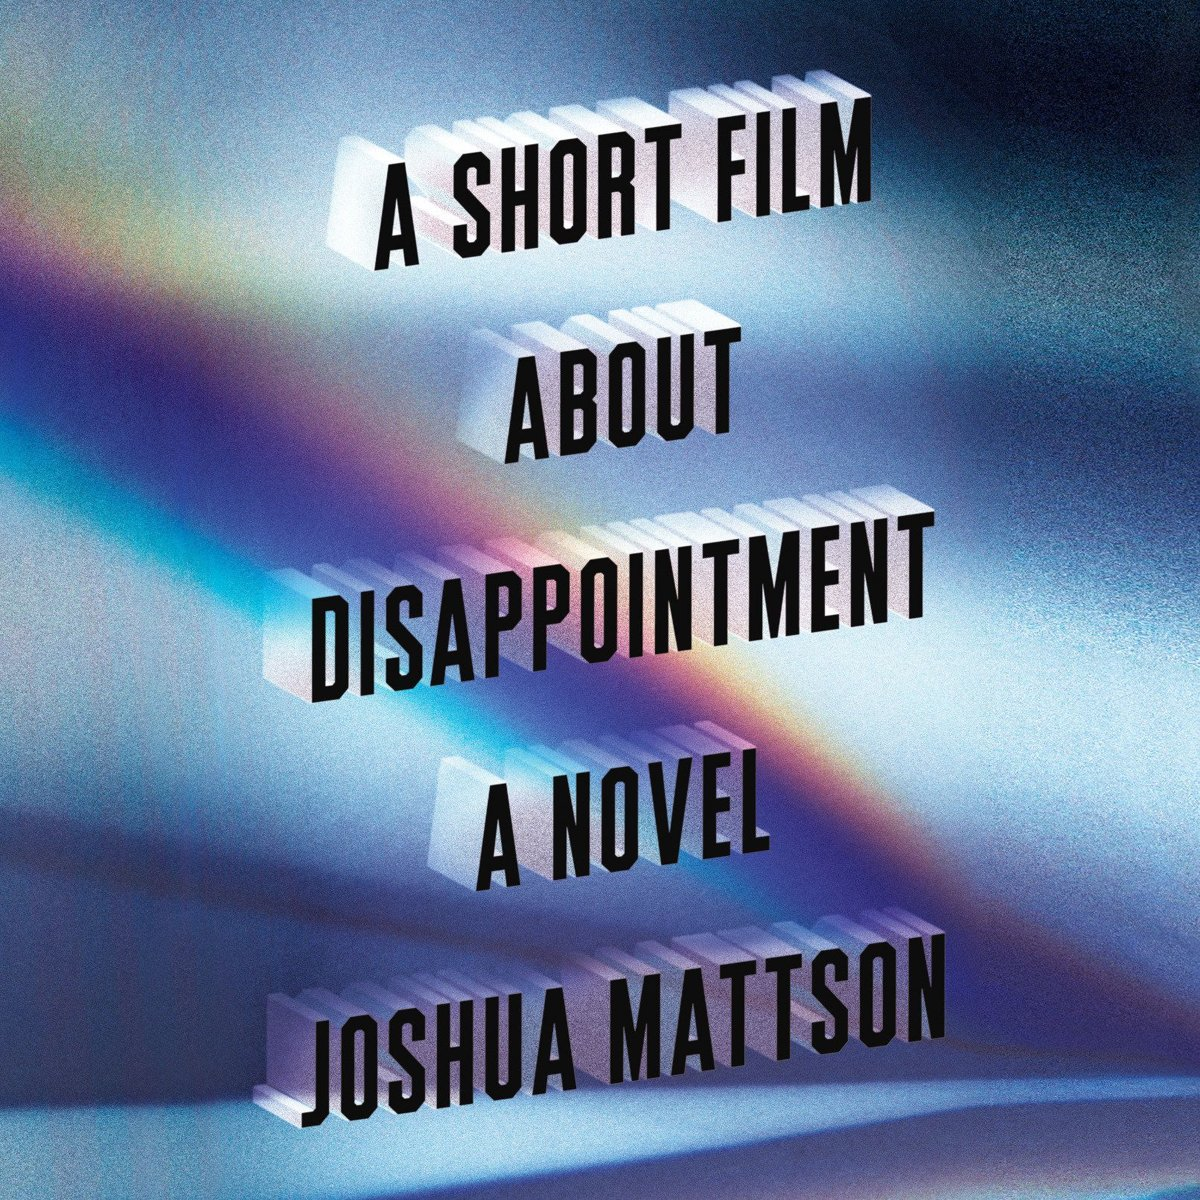 A Short Film About Disappointment